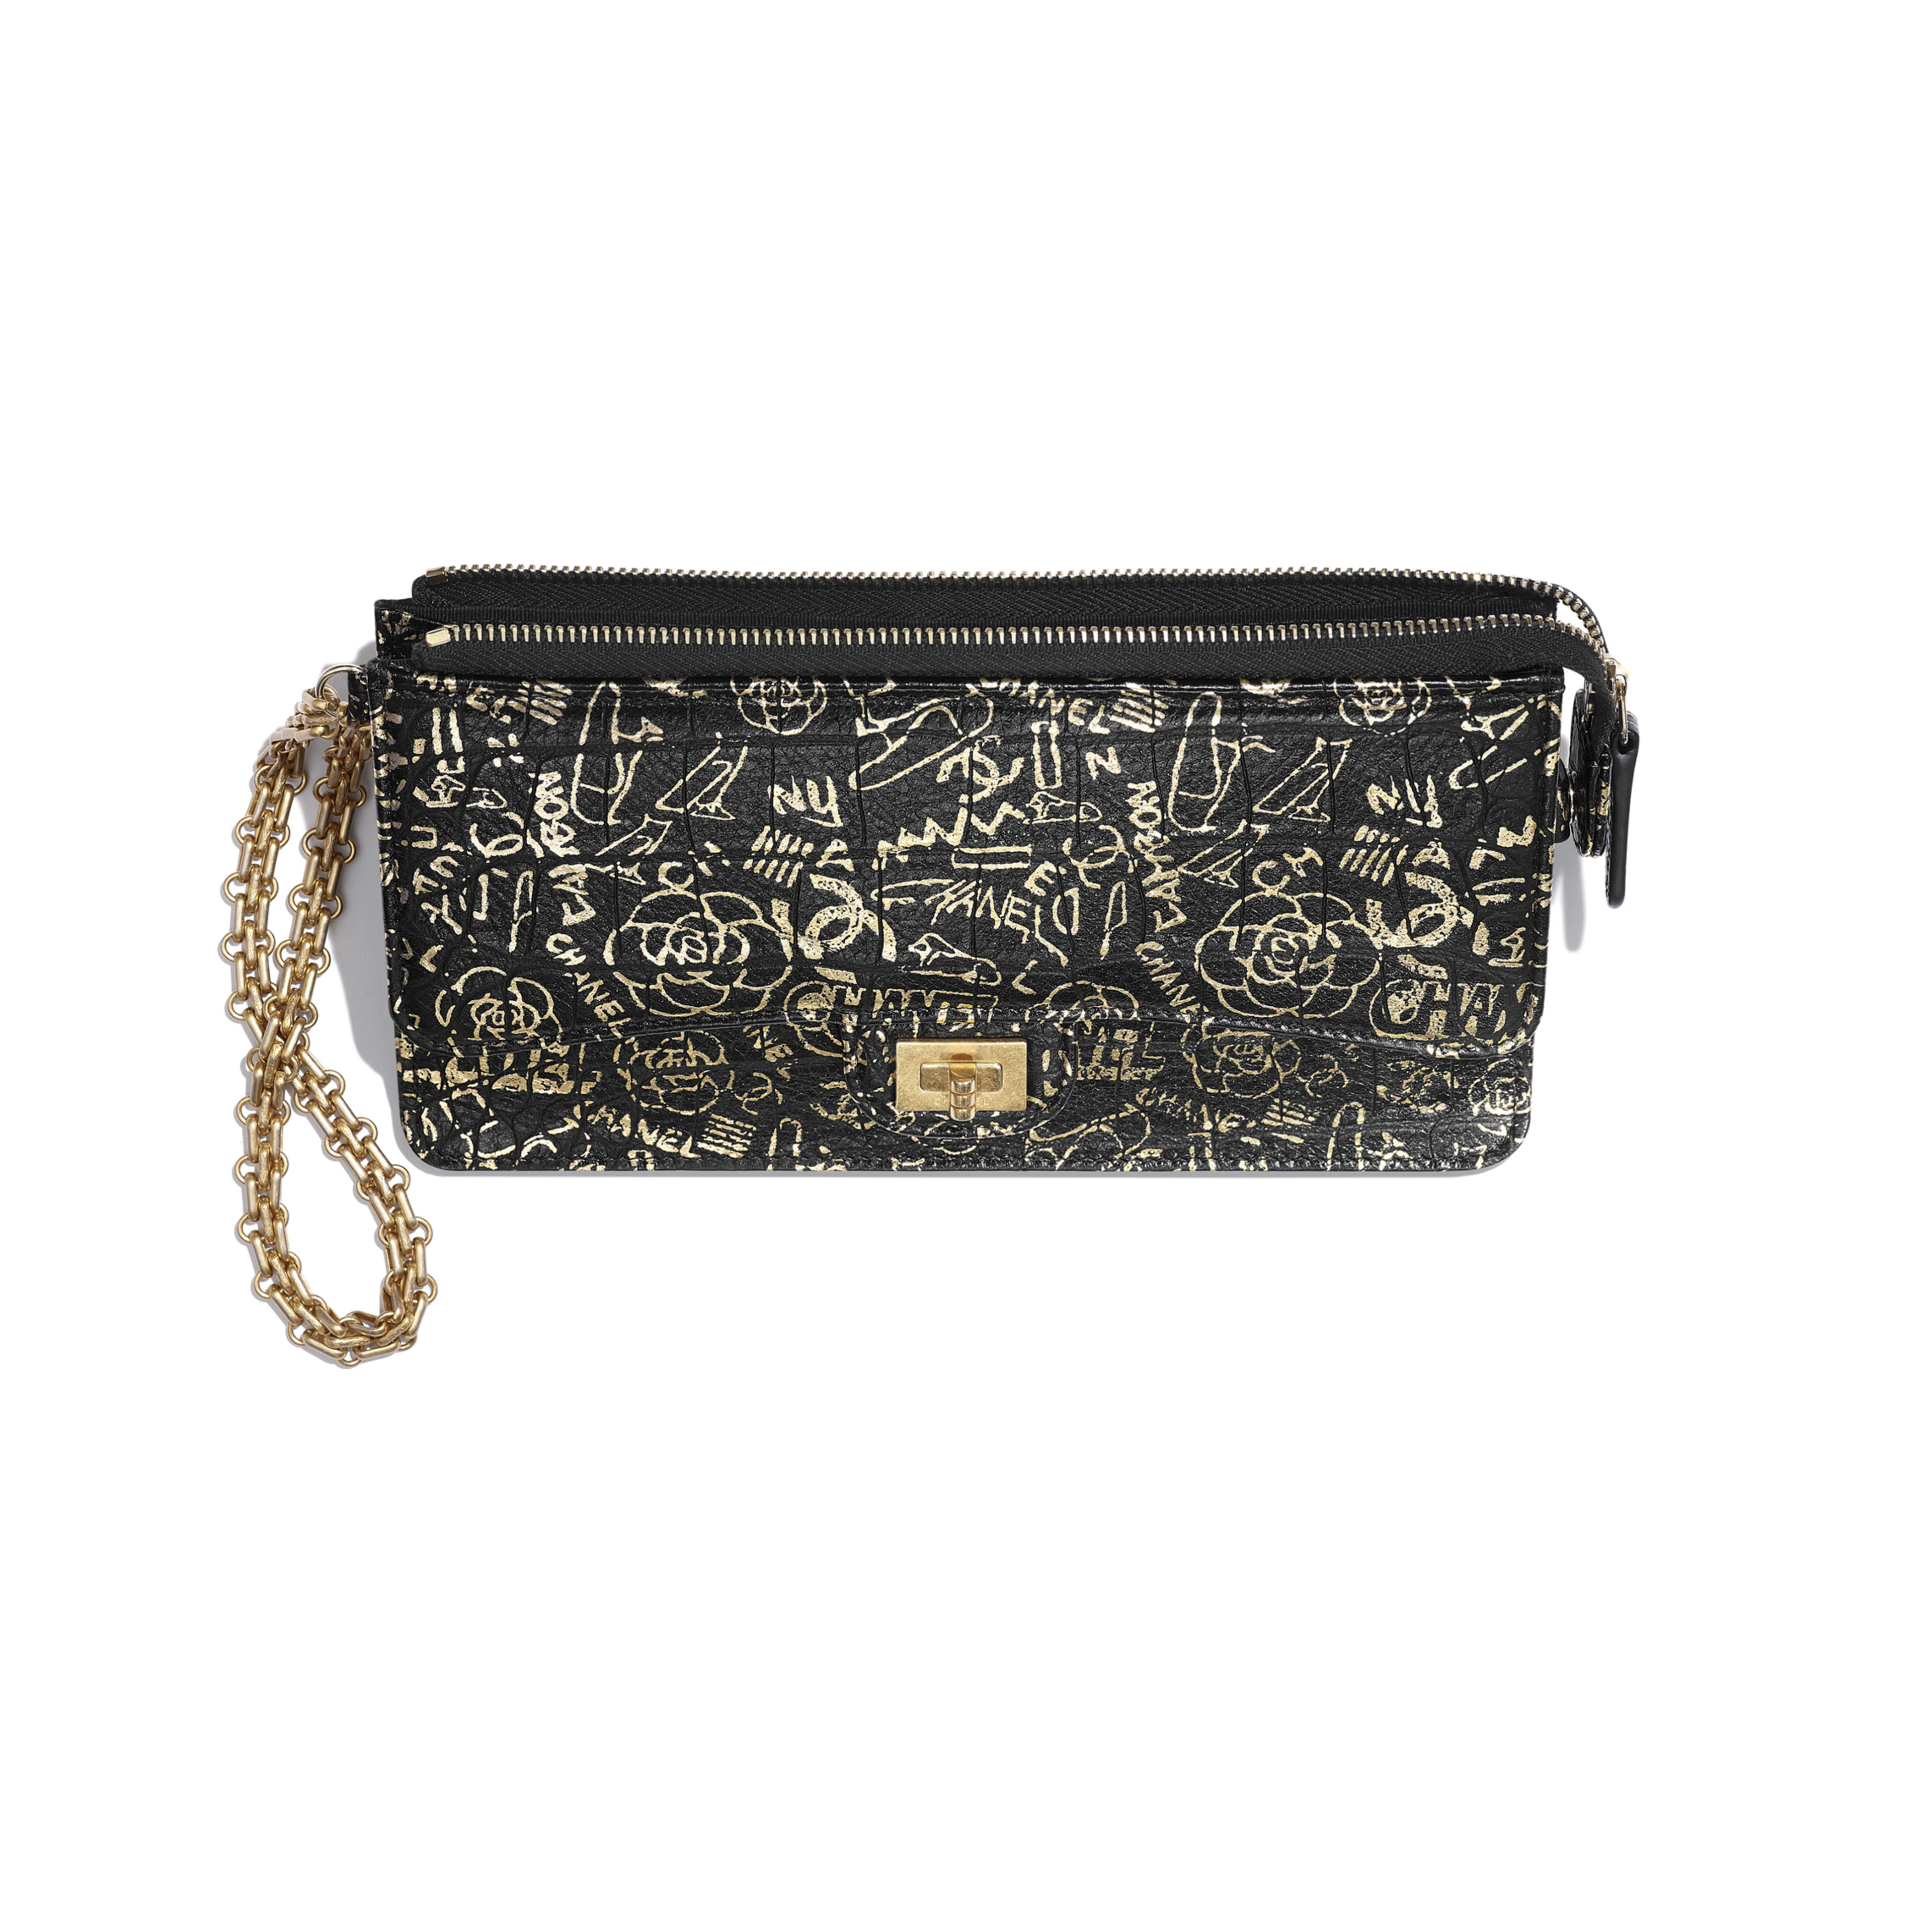 2.55 Pouch With Handle - Black & Gold - Crocodile Embossed Printed Leather & Gold-Tone Metal - Other view - see full sized version